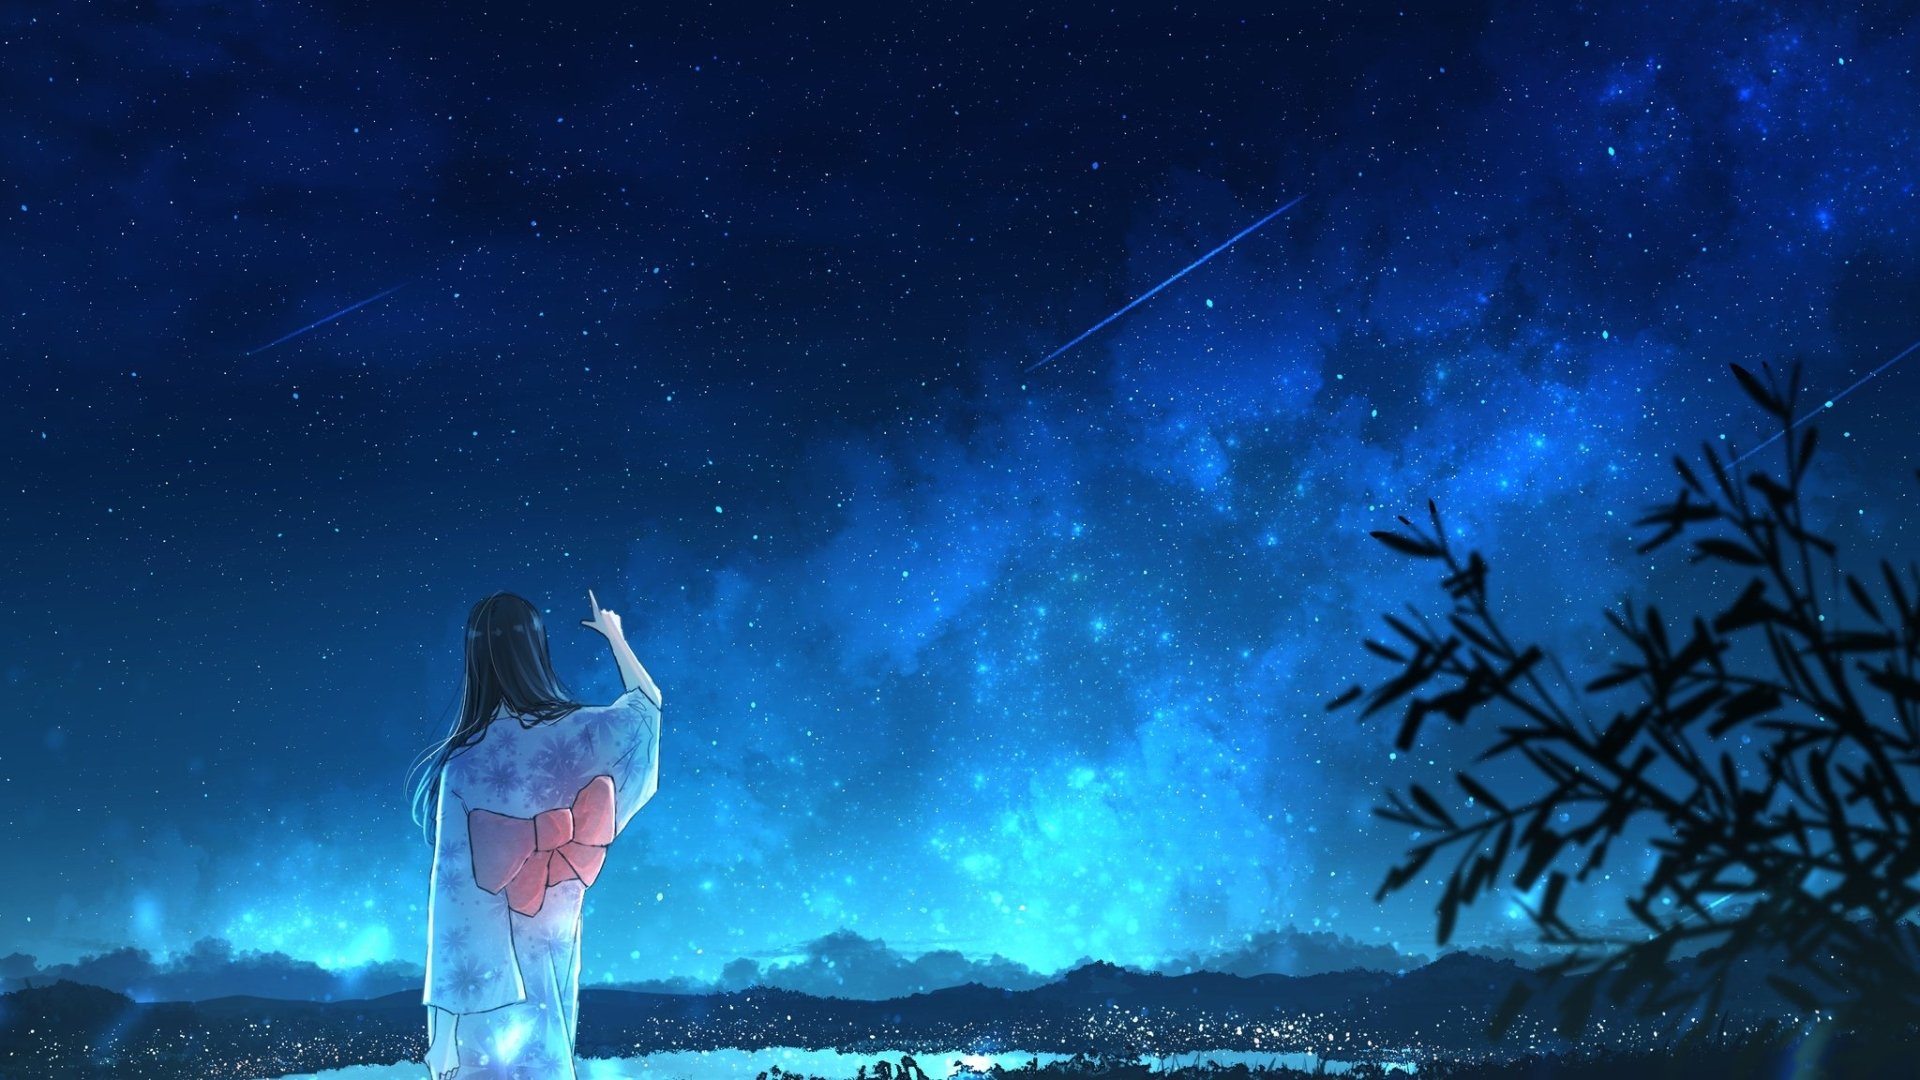 Wallpapers ID:1087370